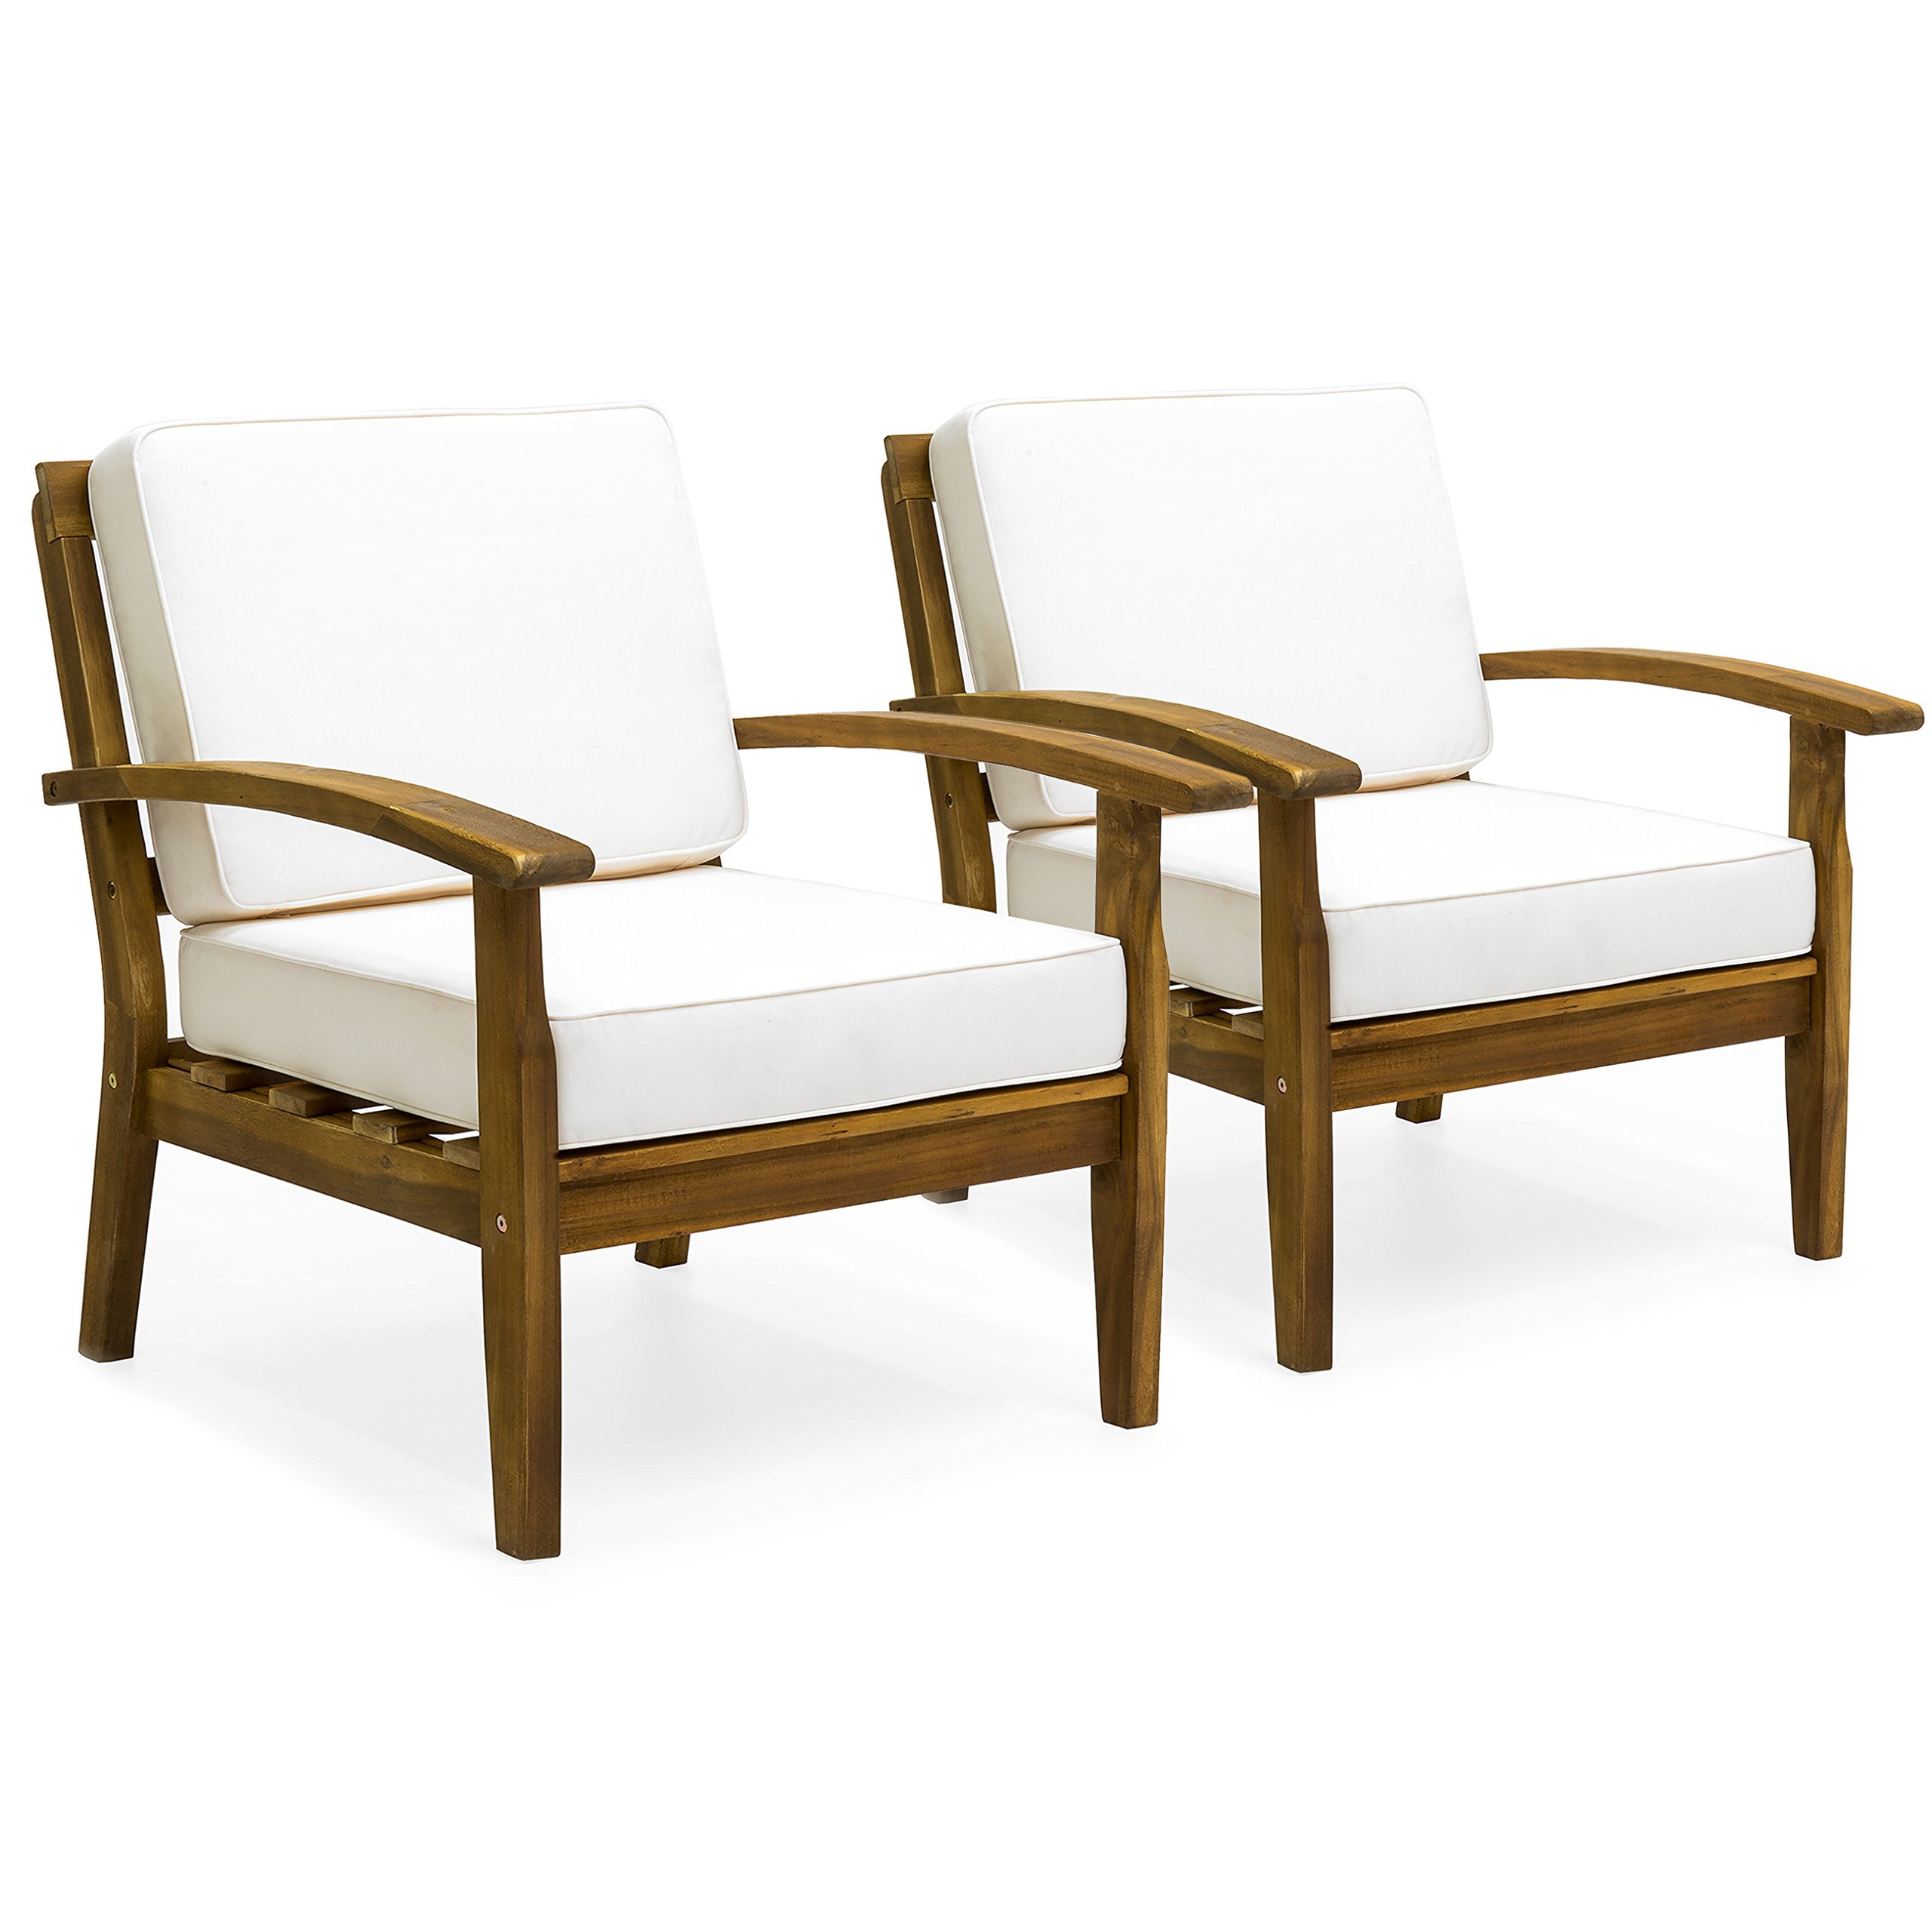 Best Choice Products Set of 2 Outdoor Acacia Wood Club Chairs w/Cushions, Cream by Best Choice Products